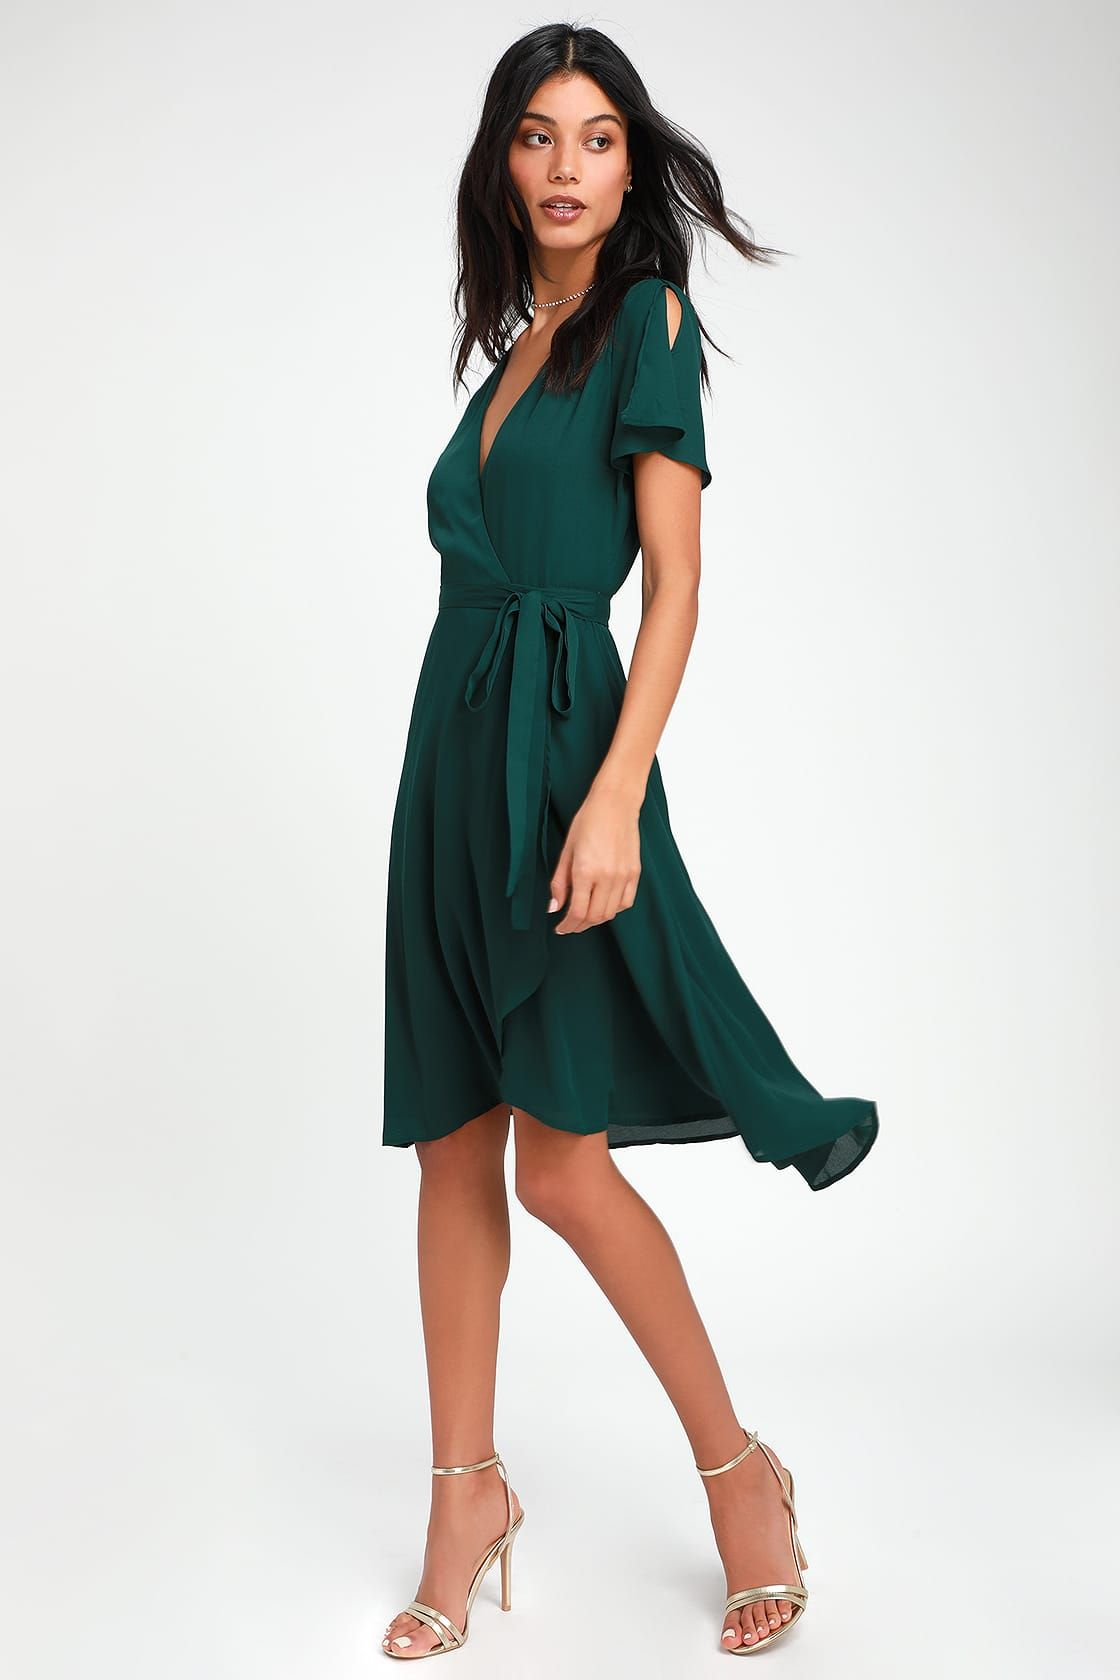 Rise To The Occasion Emerald Green Midi Wrap Dress Wrap Dress Midi Green Cocktail Dress Wrap Dress [ 1680 x 1120 Pixel ]